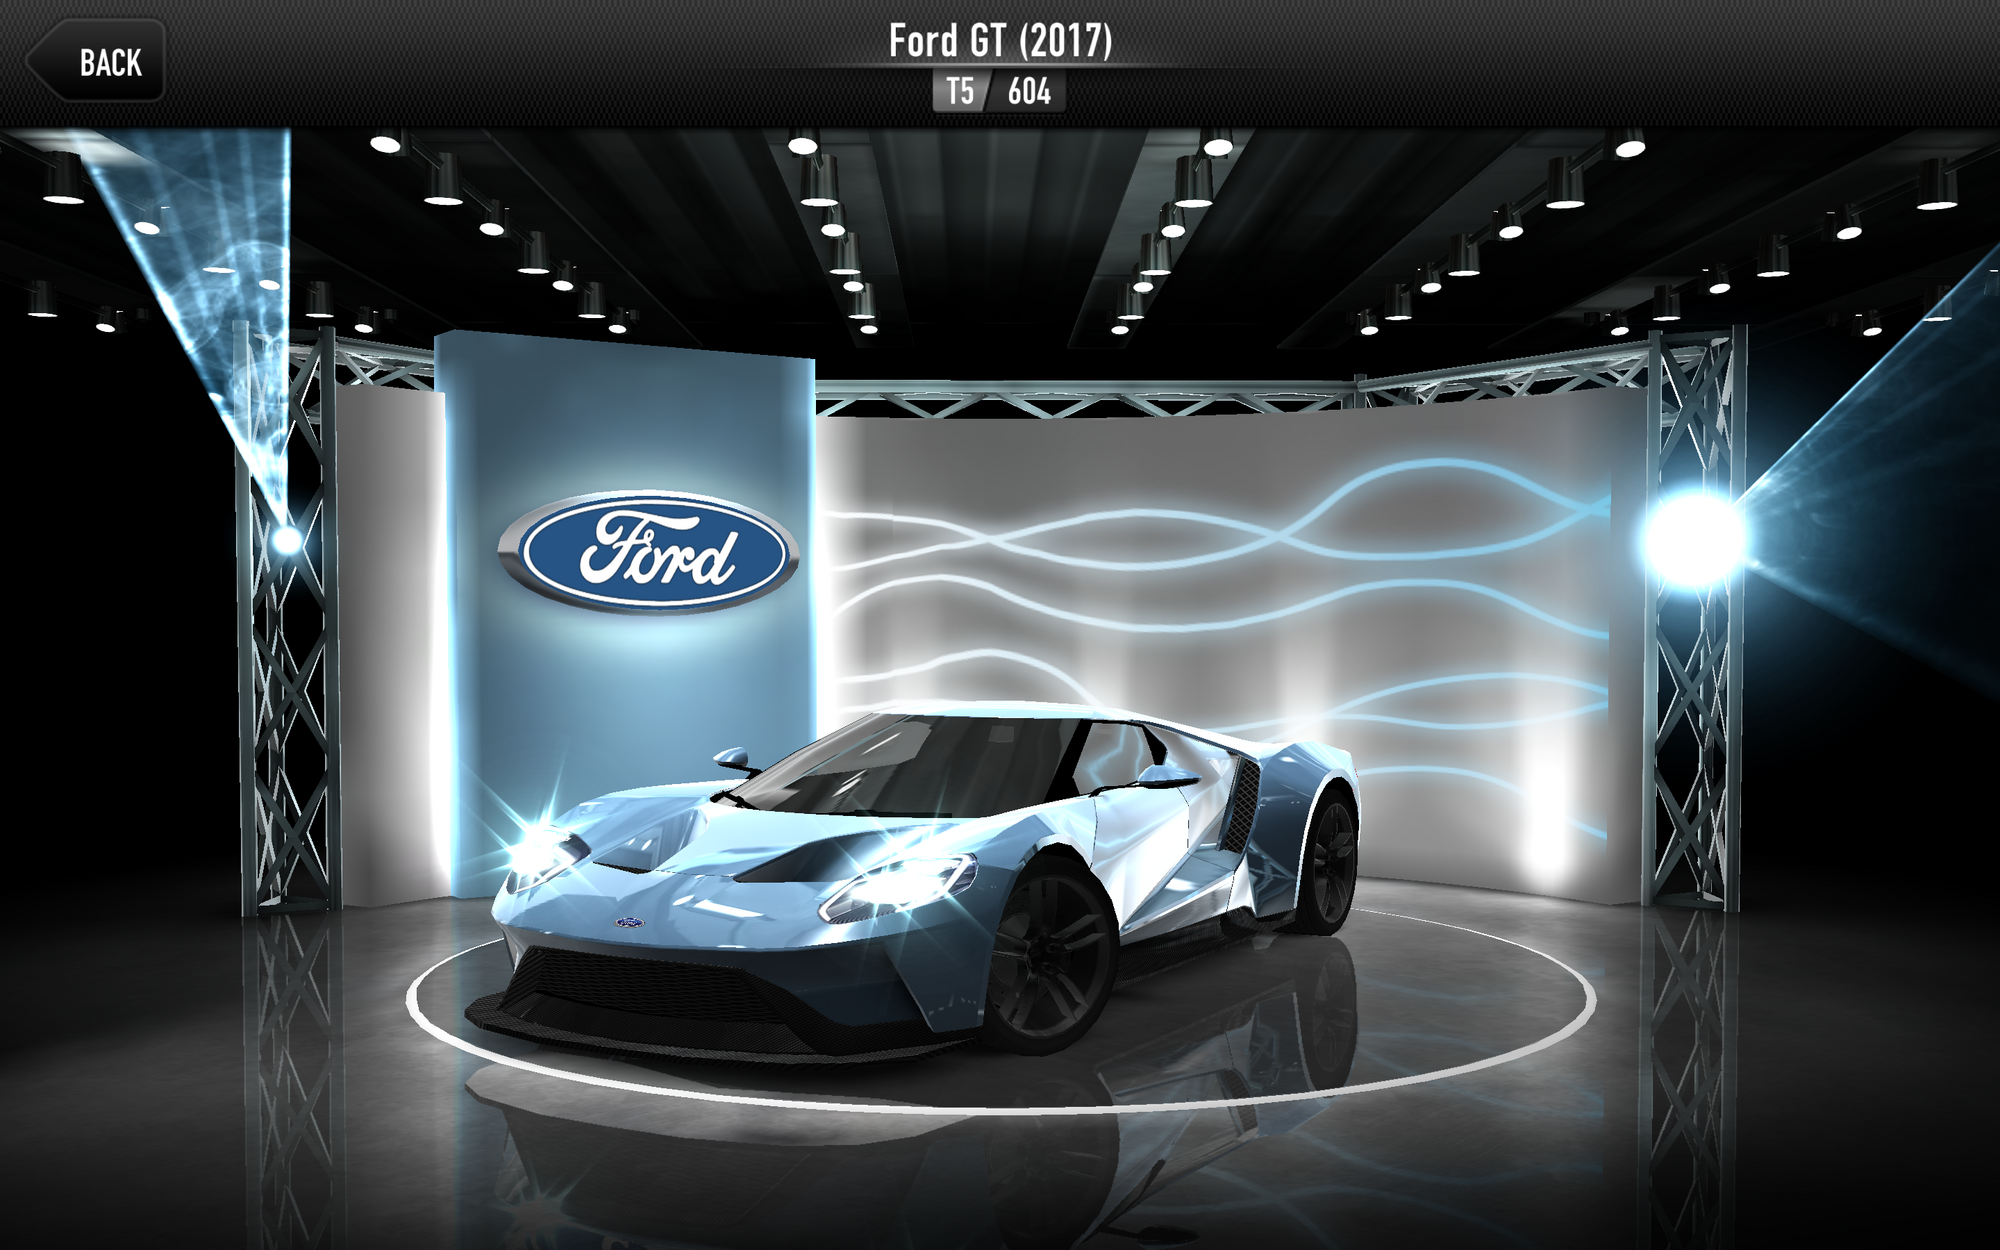 Ford GT 2017 CSR Racing Wiki